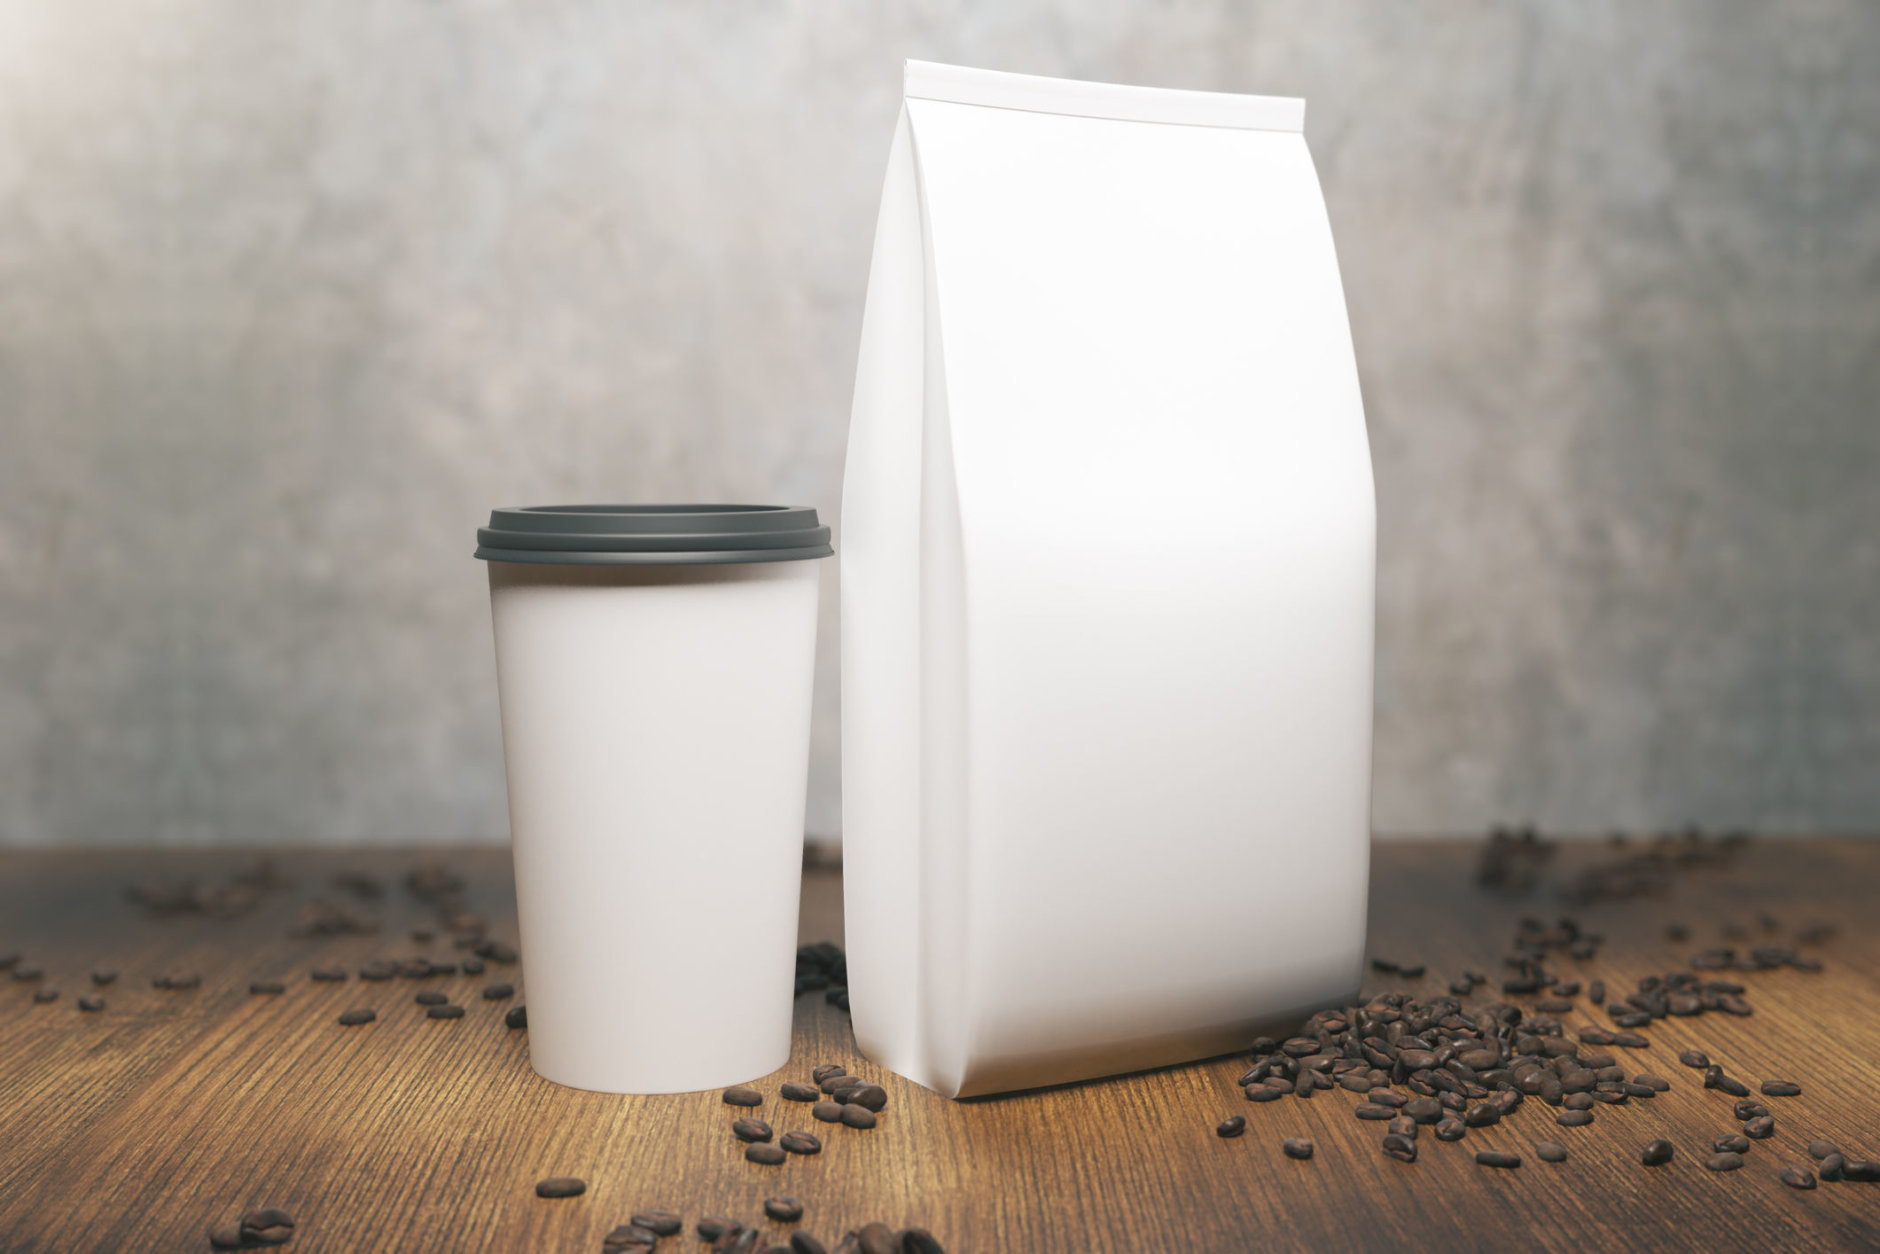 Peet's Coffee is offering in-store and online deals to take 25 percent off one pound of beans and a free drip coffee or tea. (Thinkstock)